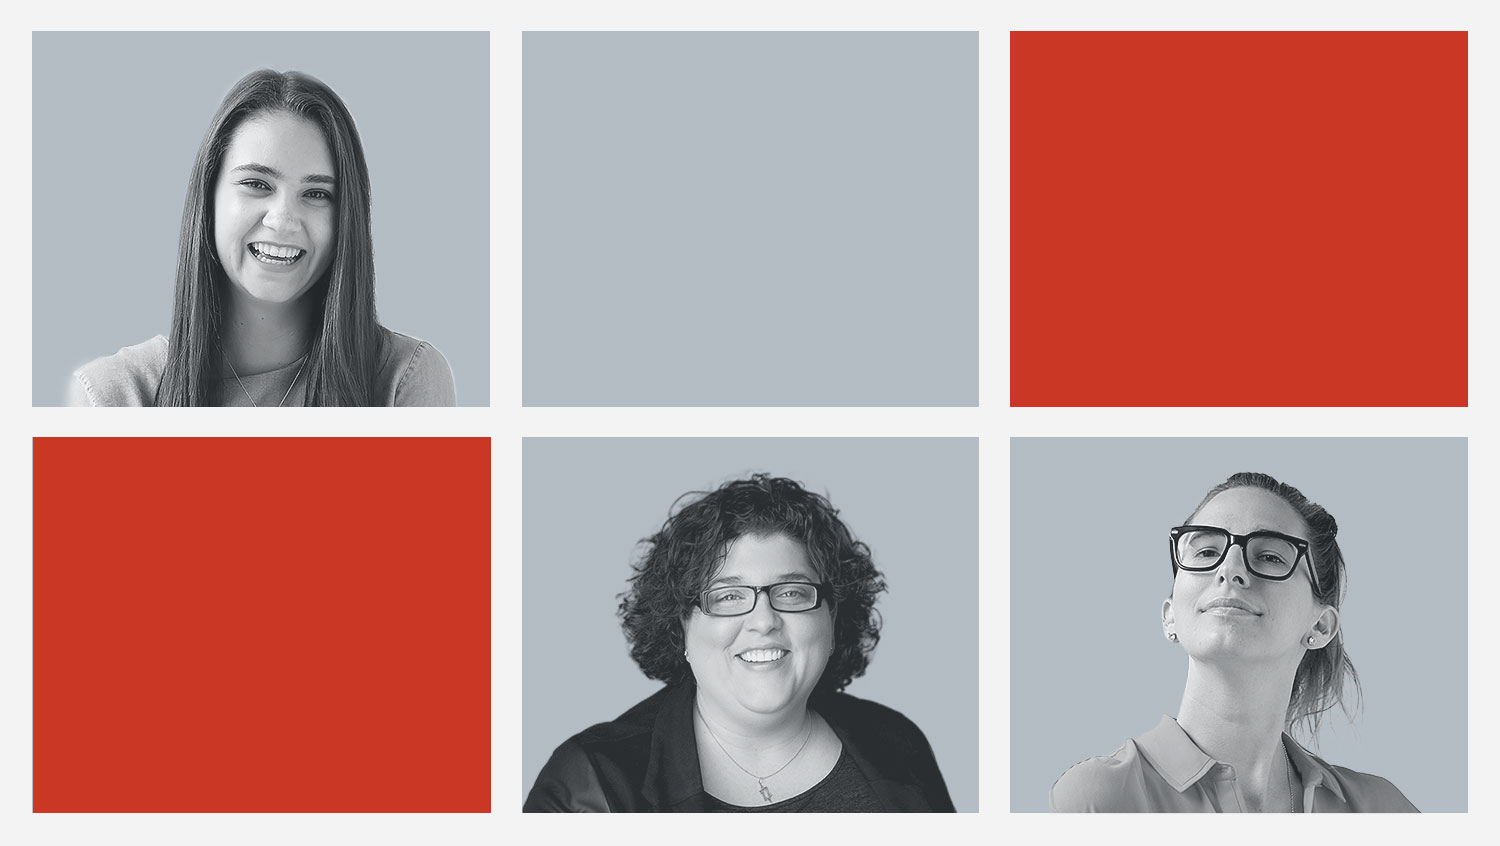 Works Design's 2020 Sustainability Reporting Trends team of digital strategists: Madi Lantz (top left), Ellie Rosen (bottom middle) and Kate Heron (bottom right)